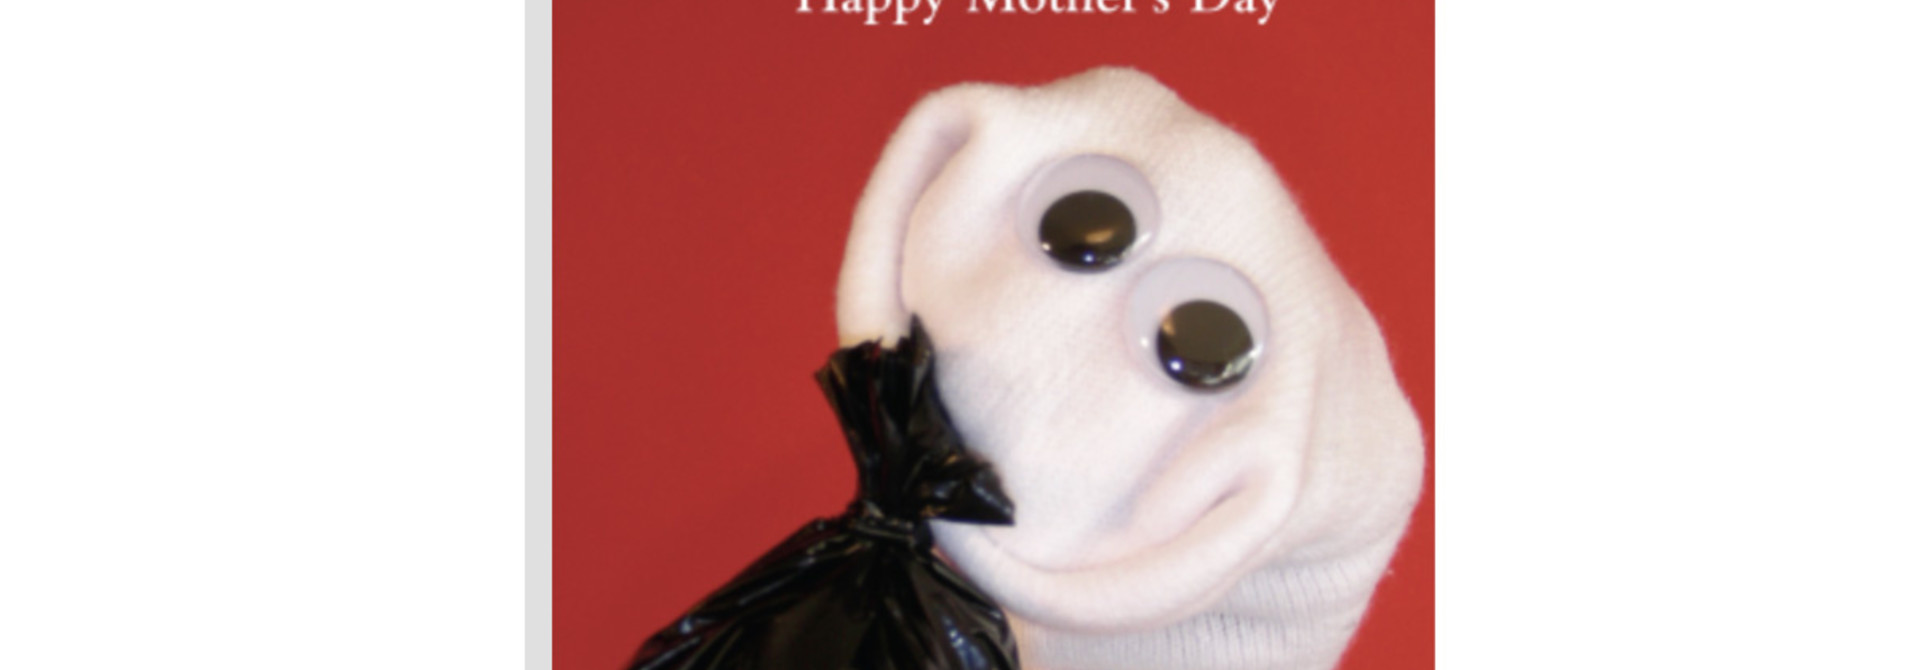 Happy Mother's Day - All I Ever...